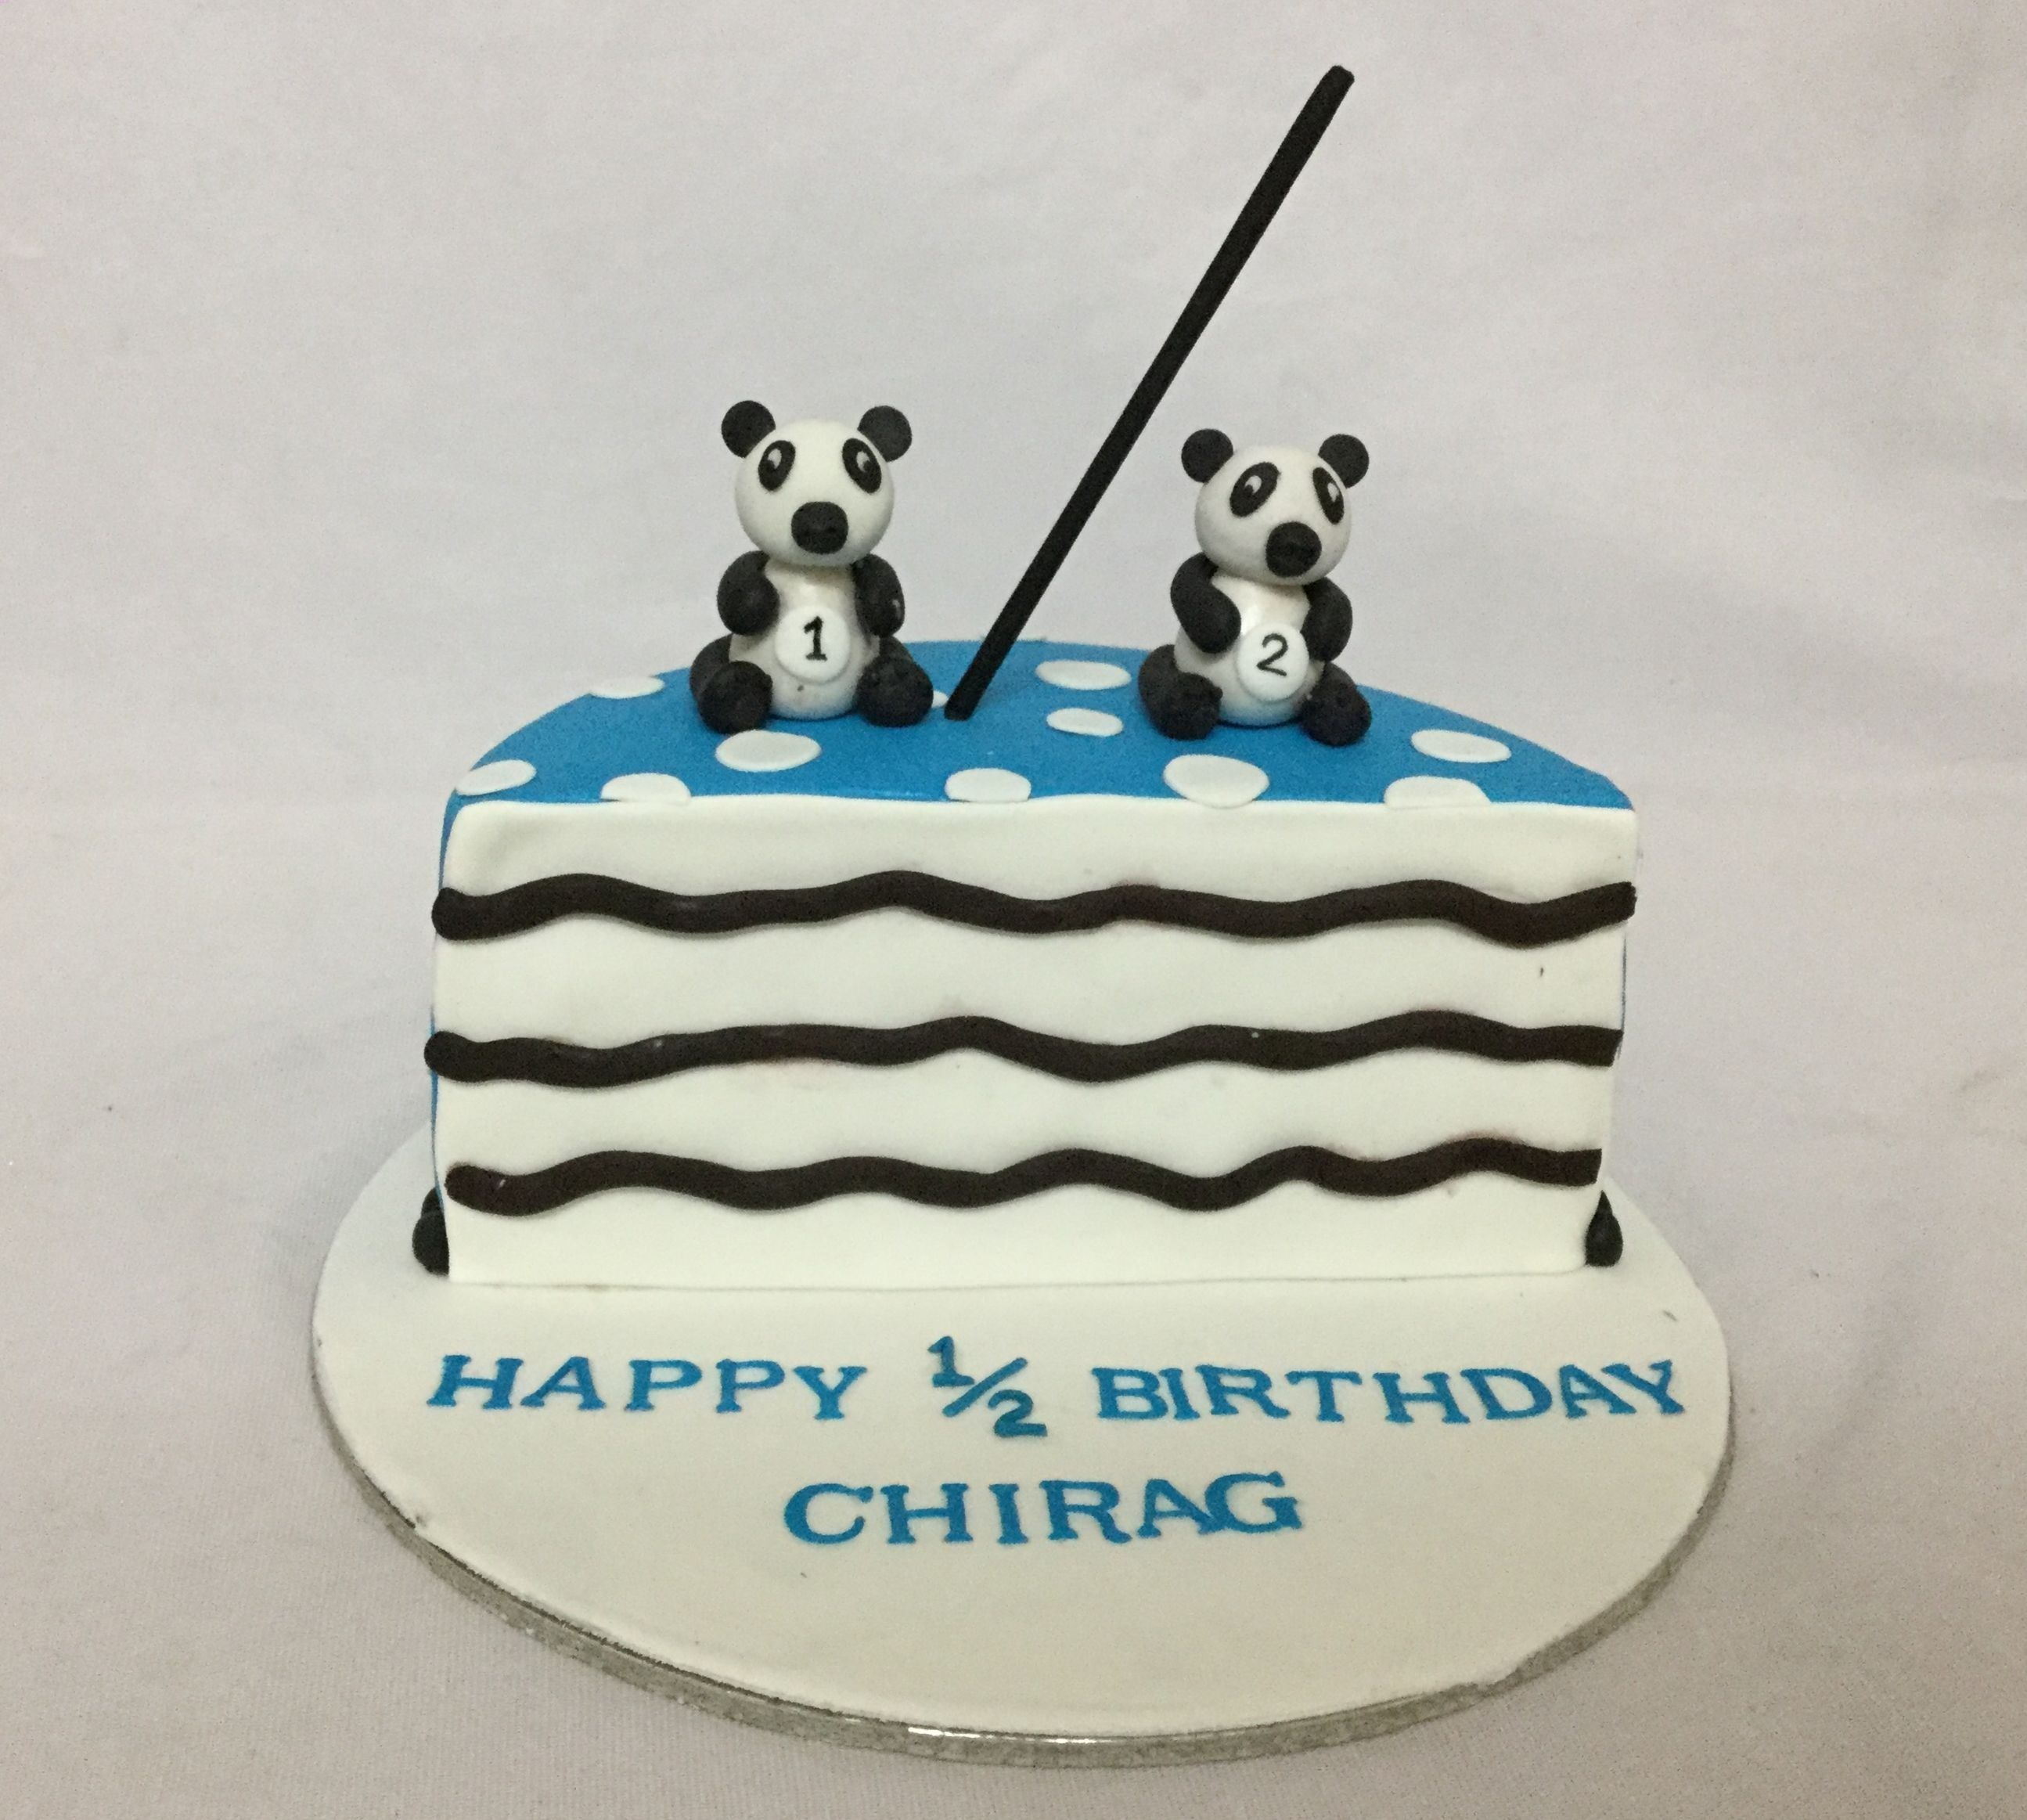 2325 In 32 Elegant Photo Of Half Birthday Cake Online Customized Cakes Delivery I Bangalore